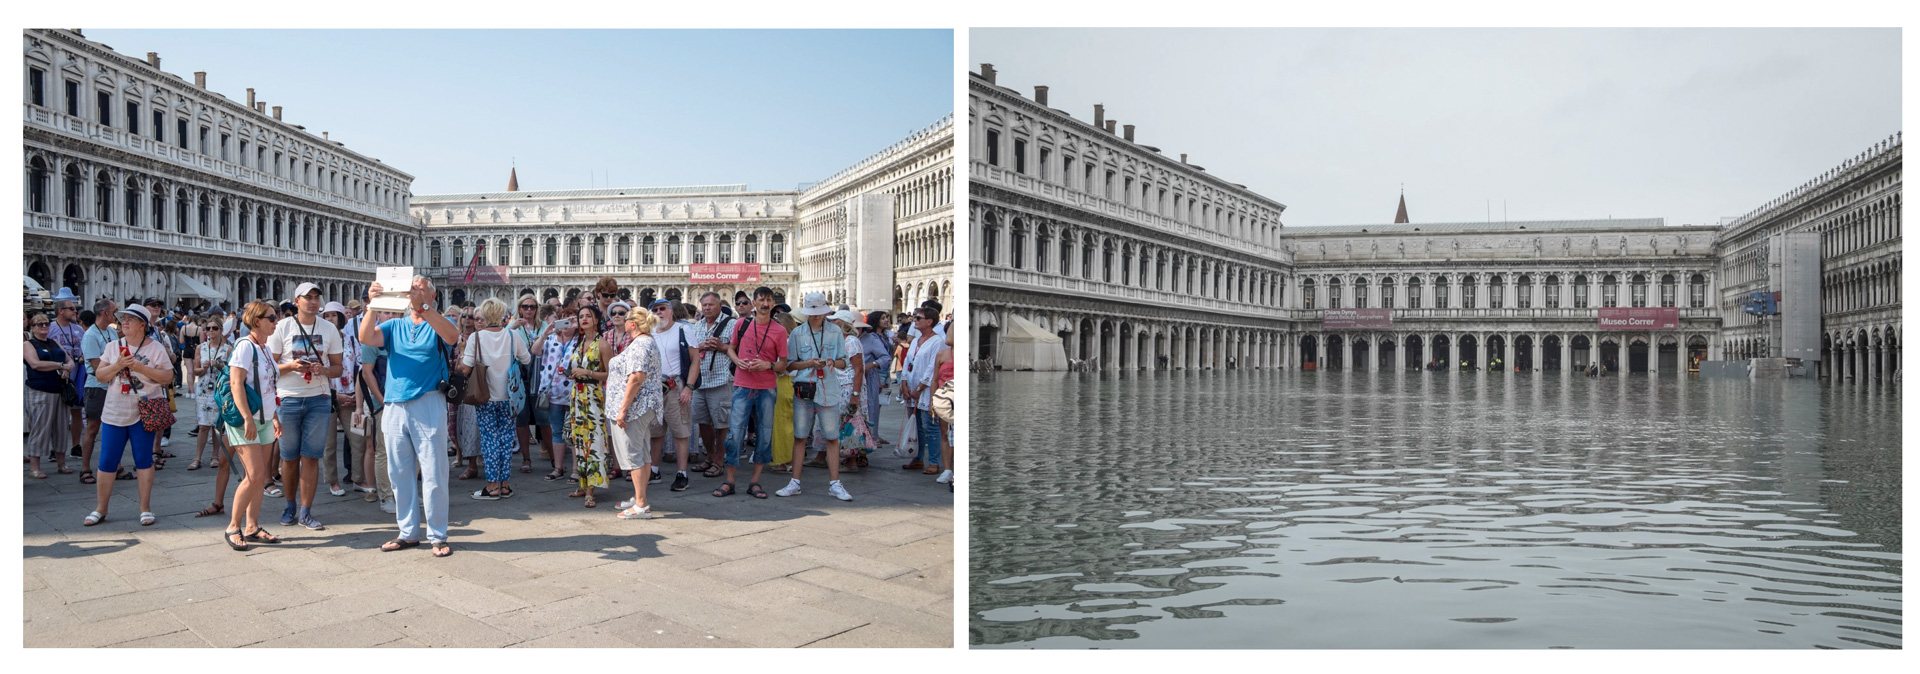 Diptych showing Venice flooded by tourists and by water